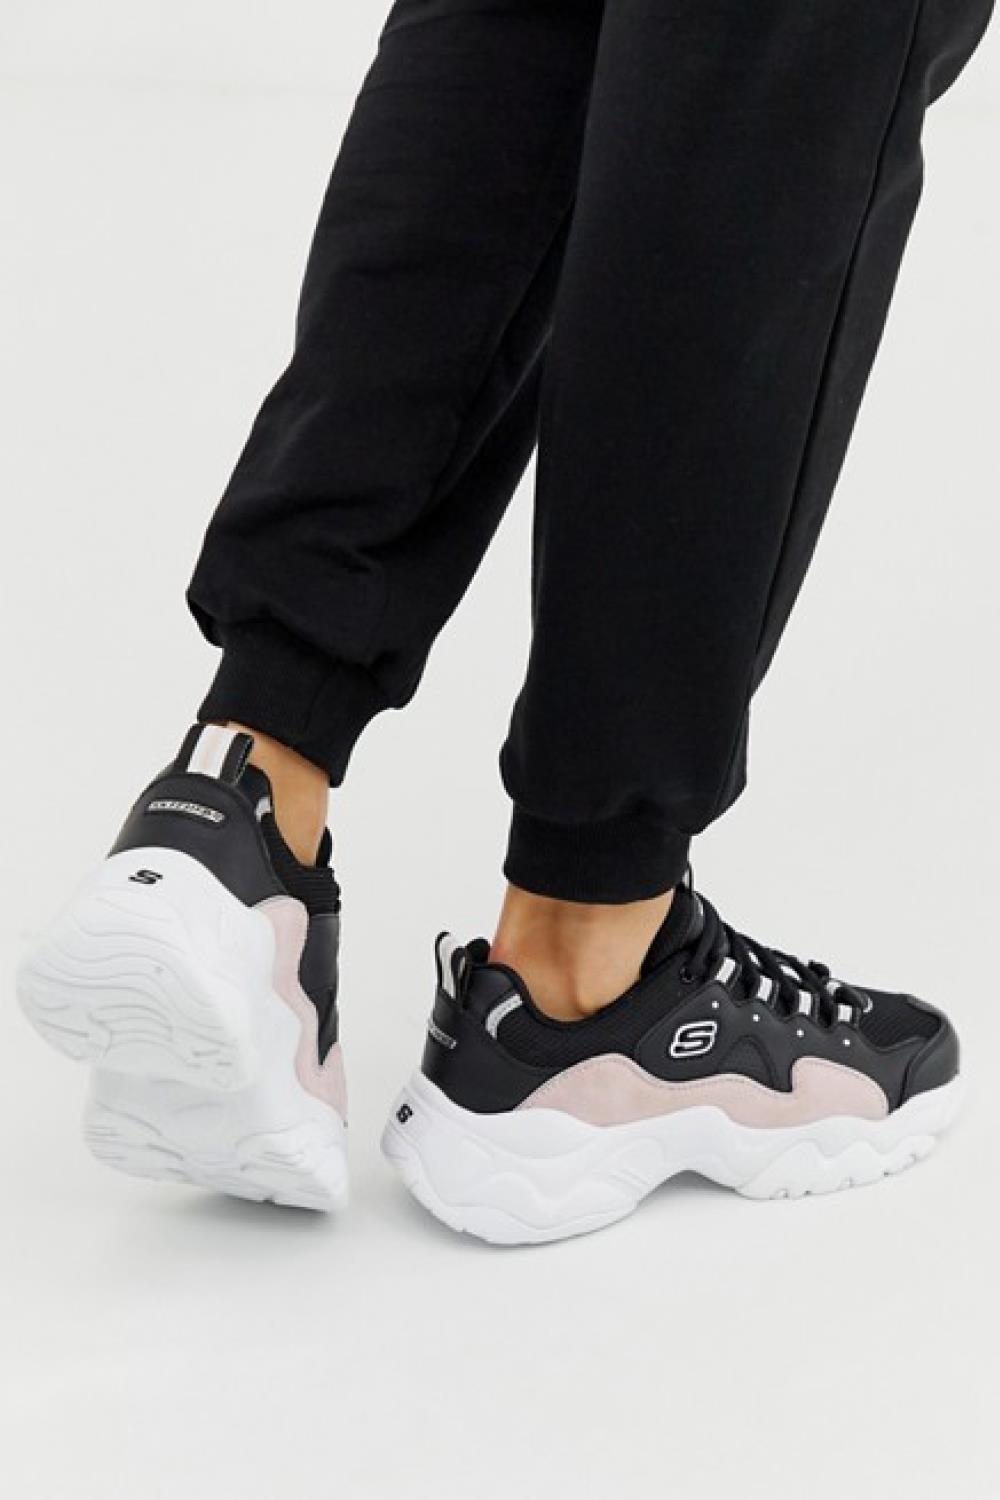 zapatillas asos skechers 81,99€